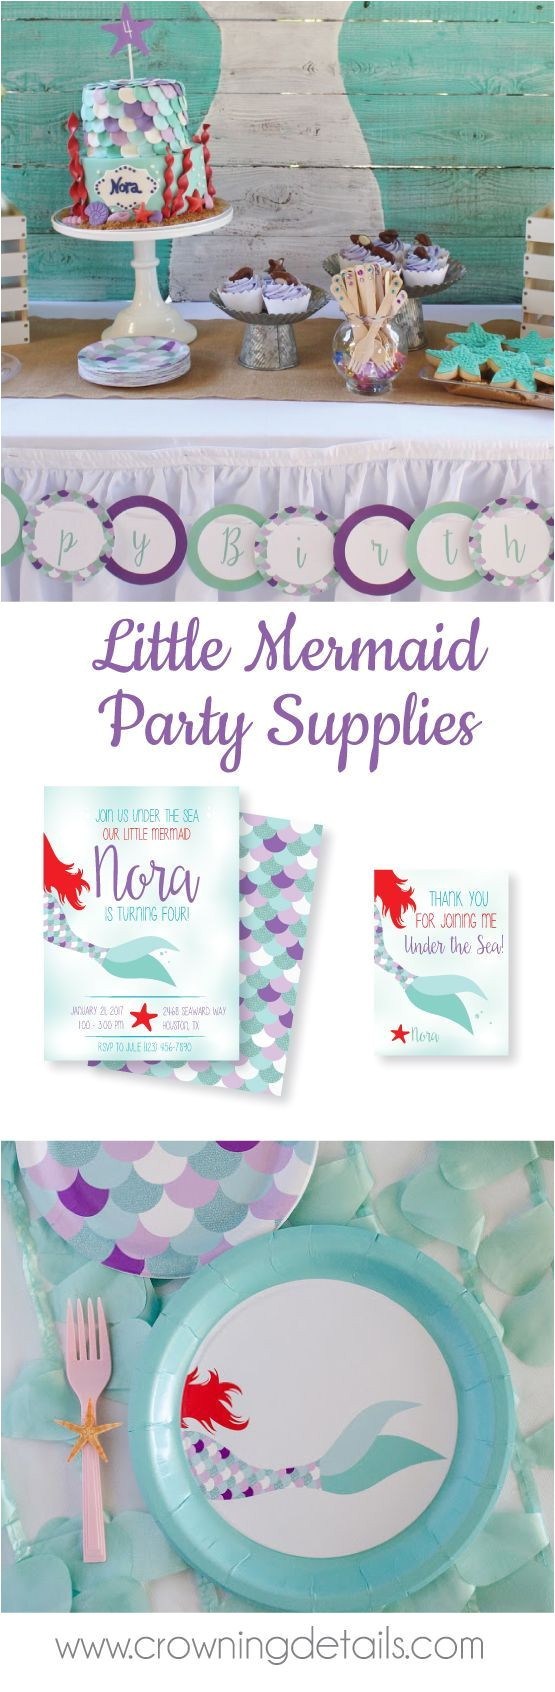 mermaid party ideas shop our collection of mermaid party supplies in the online store